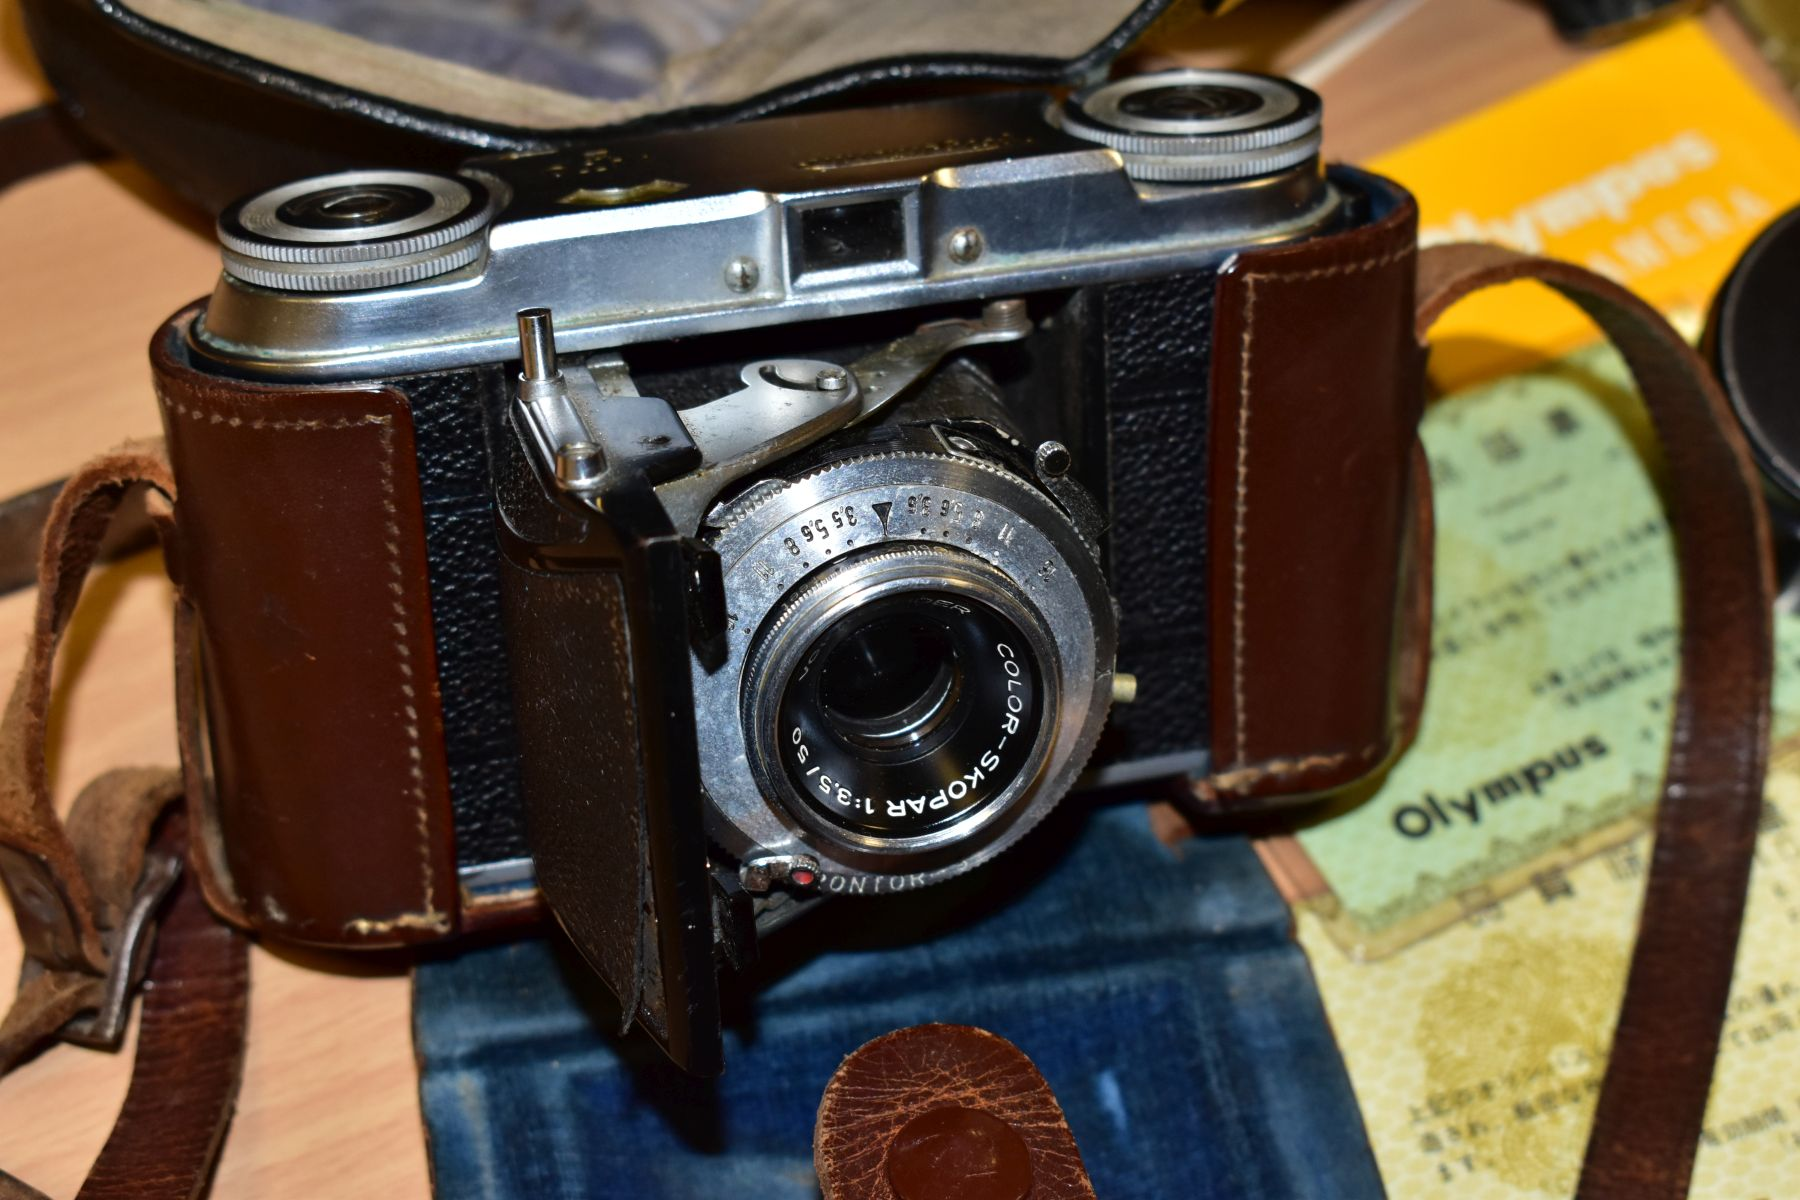 AN ORIGINAL OLYMPUS F HALF FRAME FILM CAMERA fitted with a 38mm f1.8 Olympus Zuiko lens and F T - Image 2 of 11